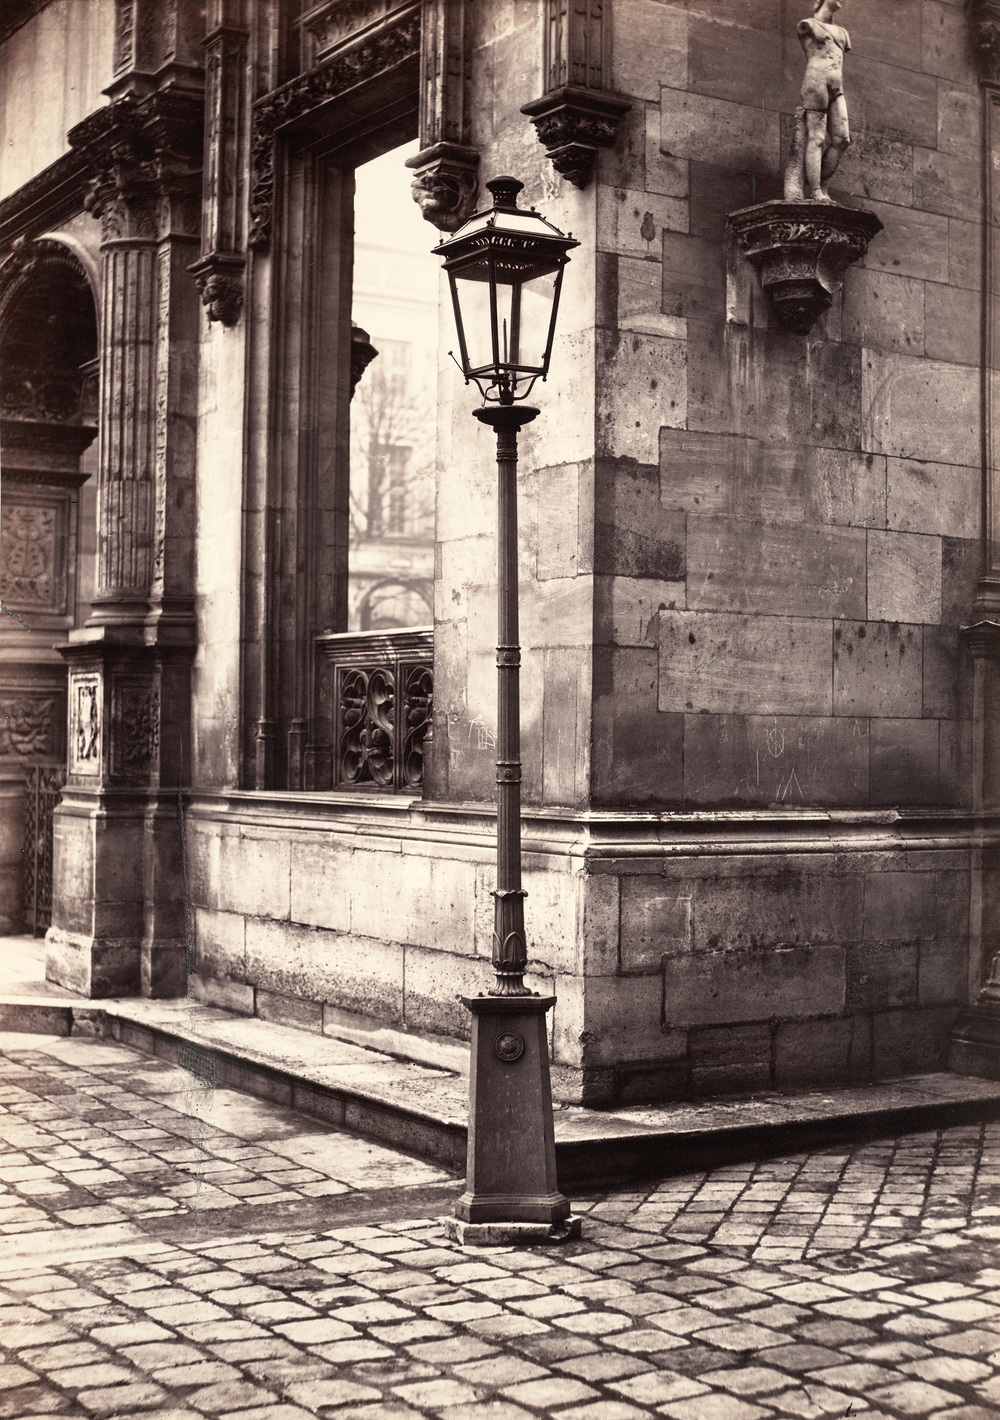 14-lamppost-entrance-to-the-c3a9cole-des-beaux-arts-ca-1870.jpg